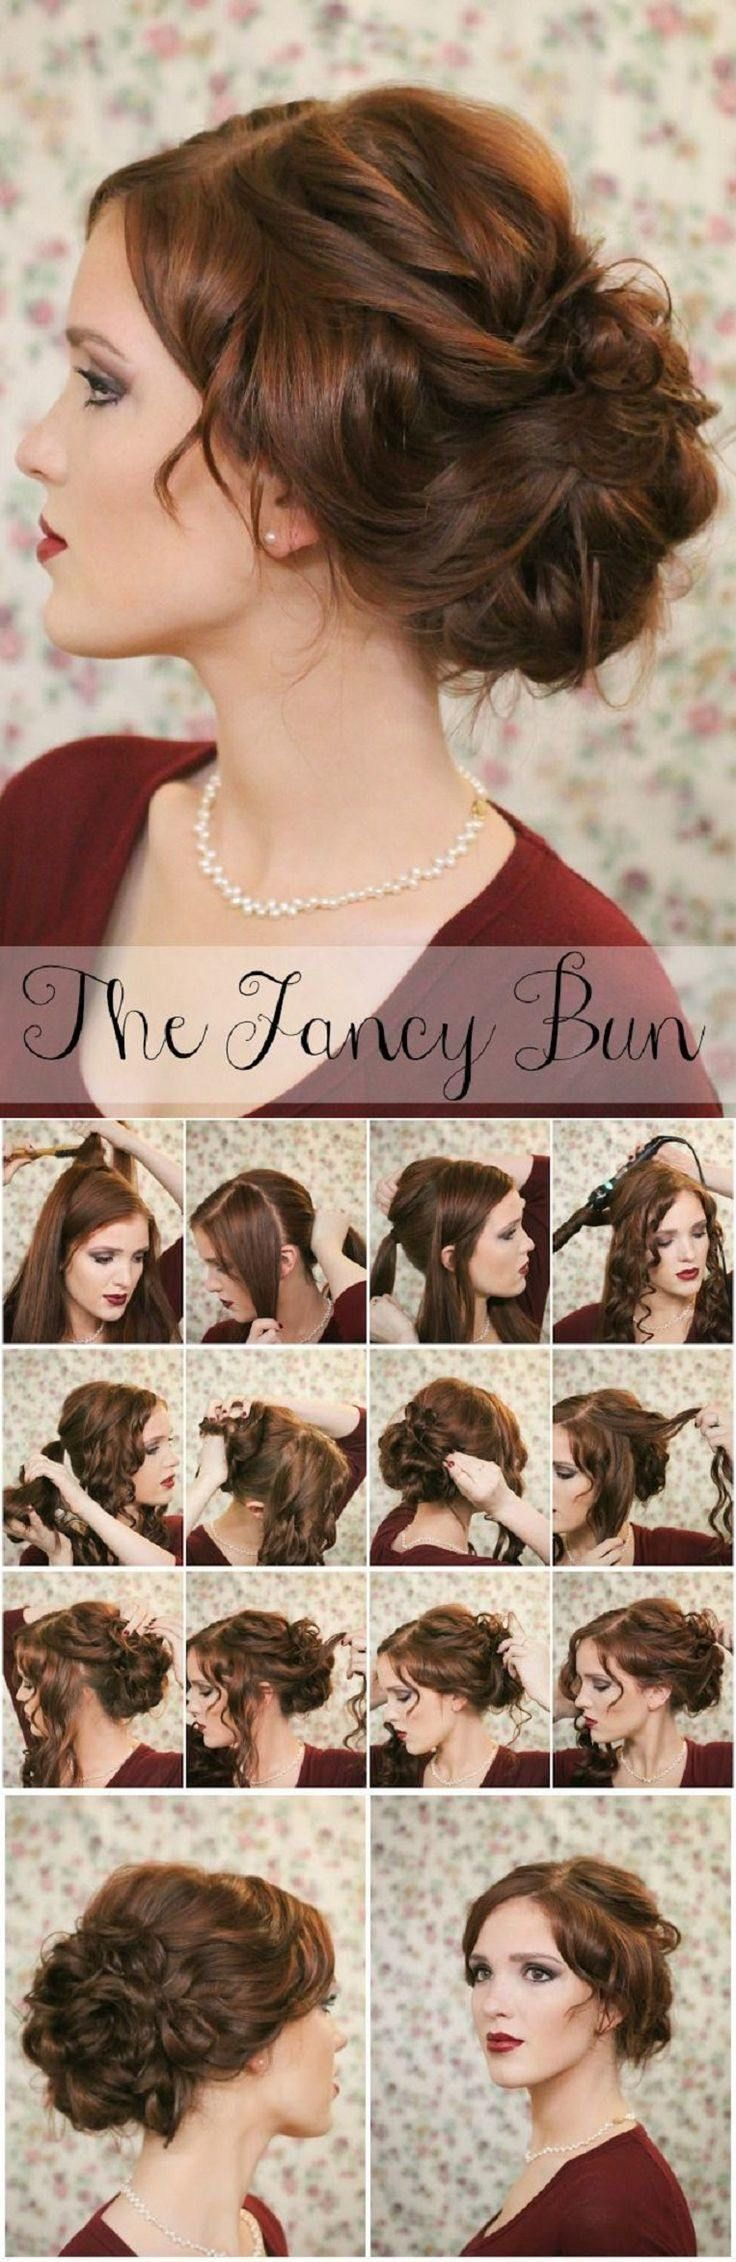 Prime 1000 Ideas About Easy Updo Tutorial On Pinterest Easy Updo Short Hairstyles Gunalazisus